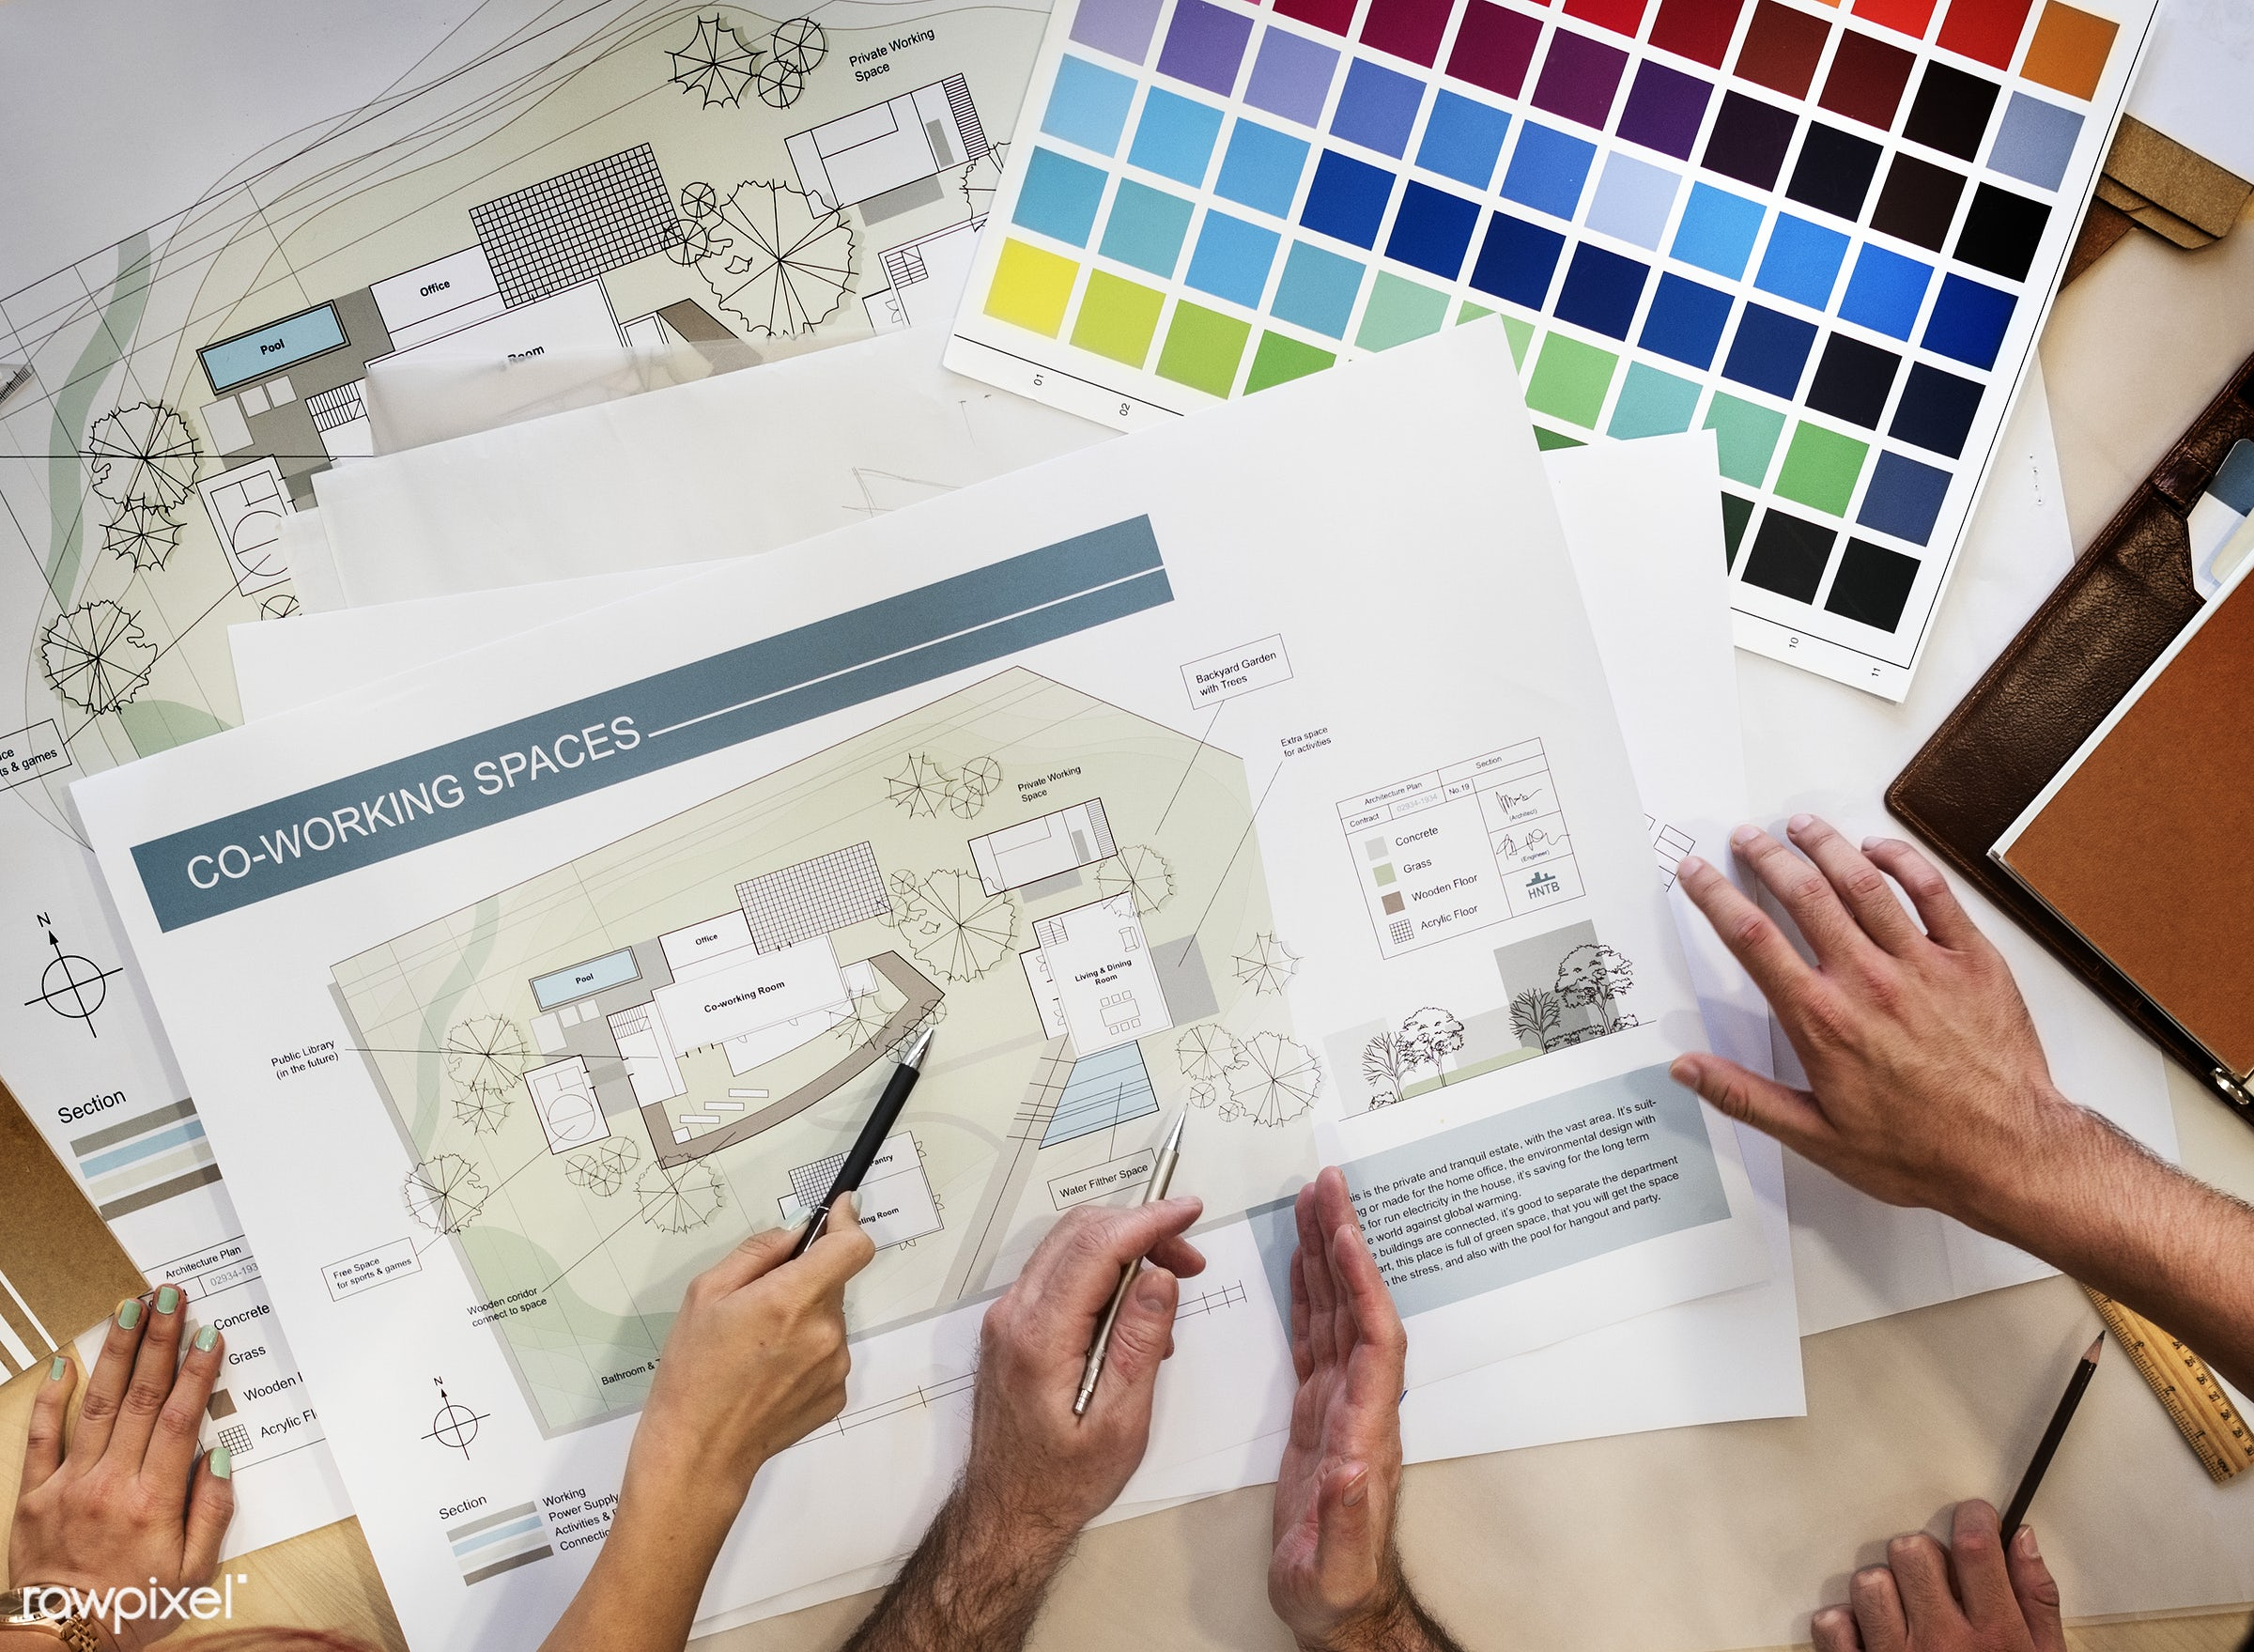 Architects working on a project - architecture, project, designer, architect, planning, innovation, stationery, aerial view...